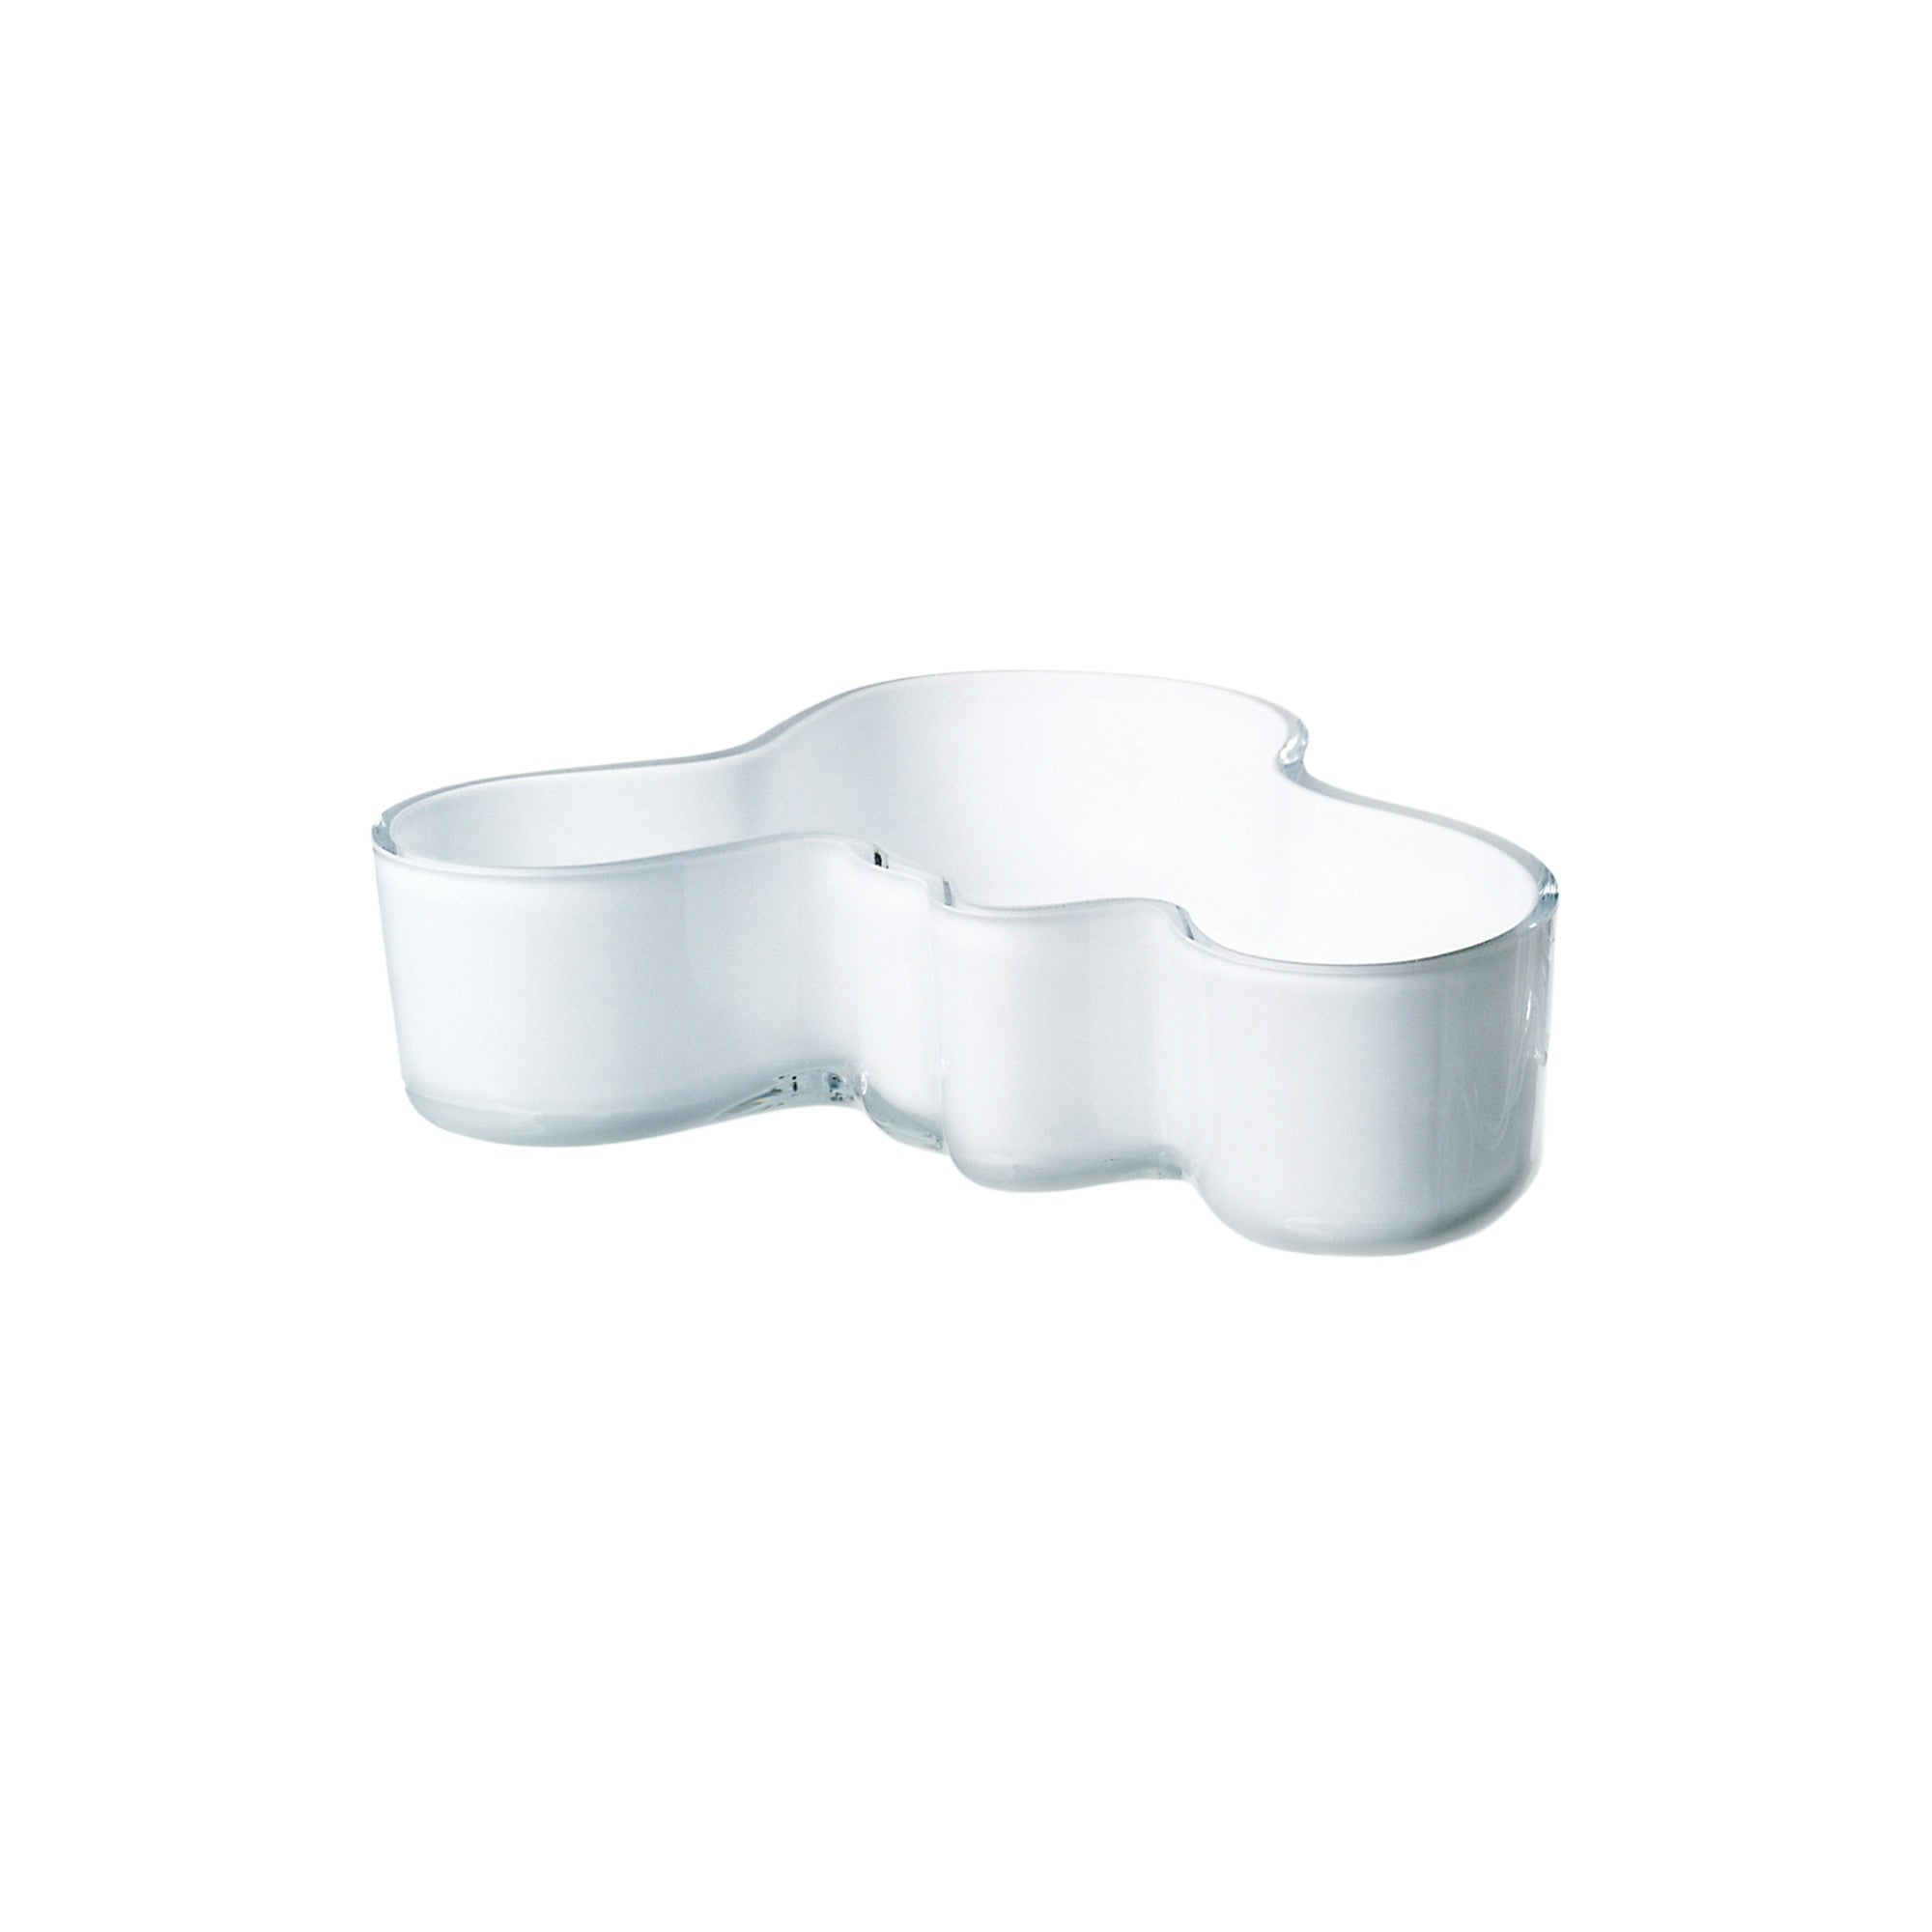 Iittala - Alvar Aalto Collection Bowl, White